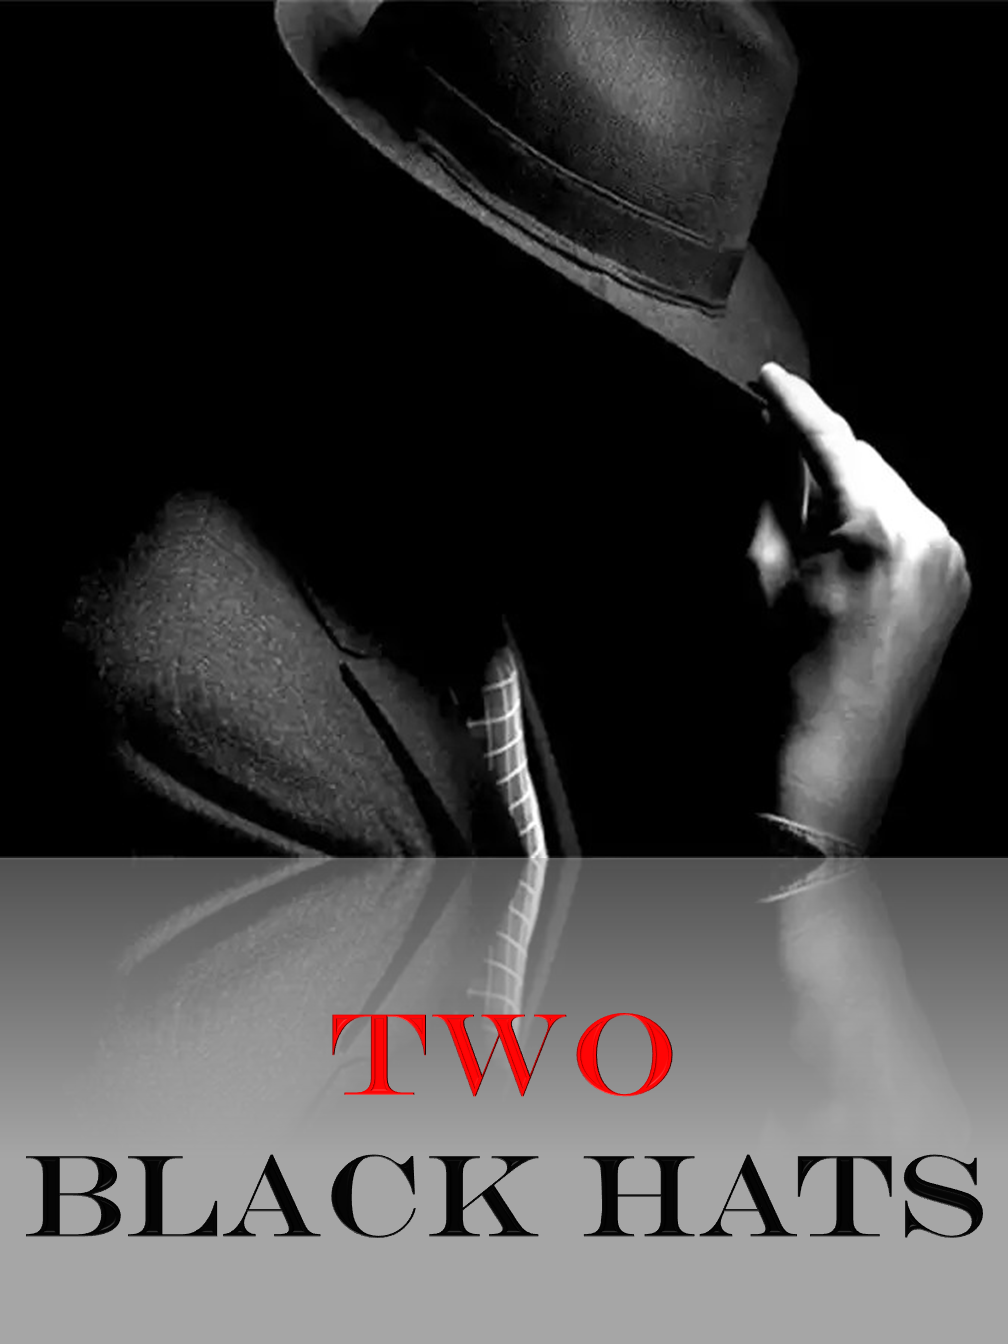 Two Black Hats